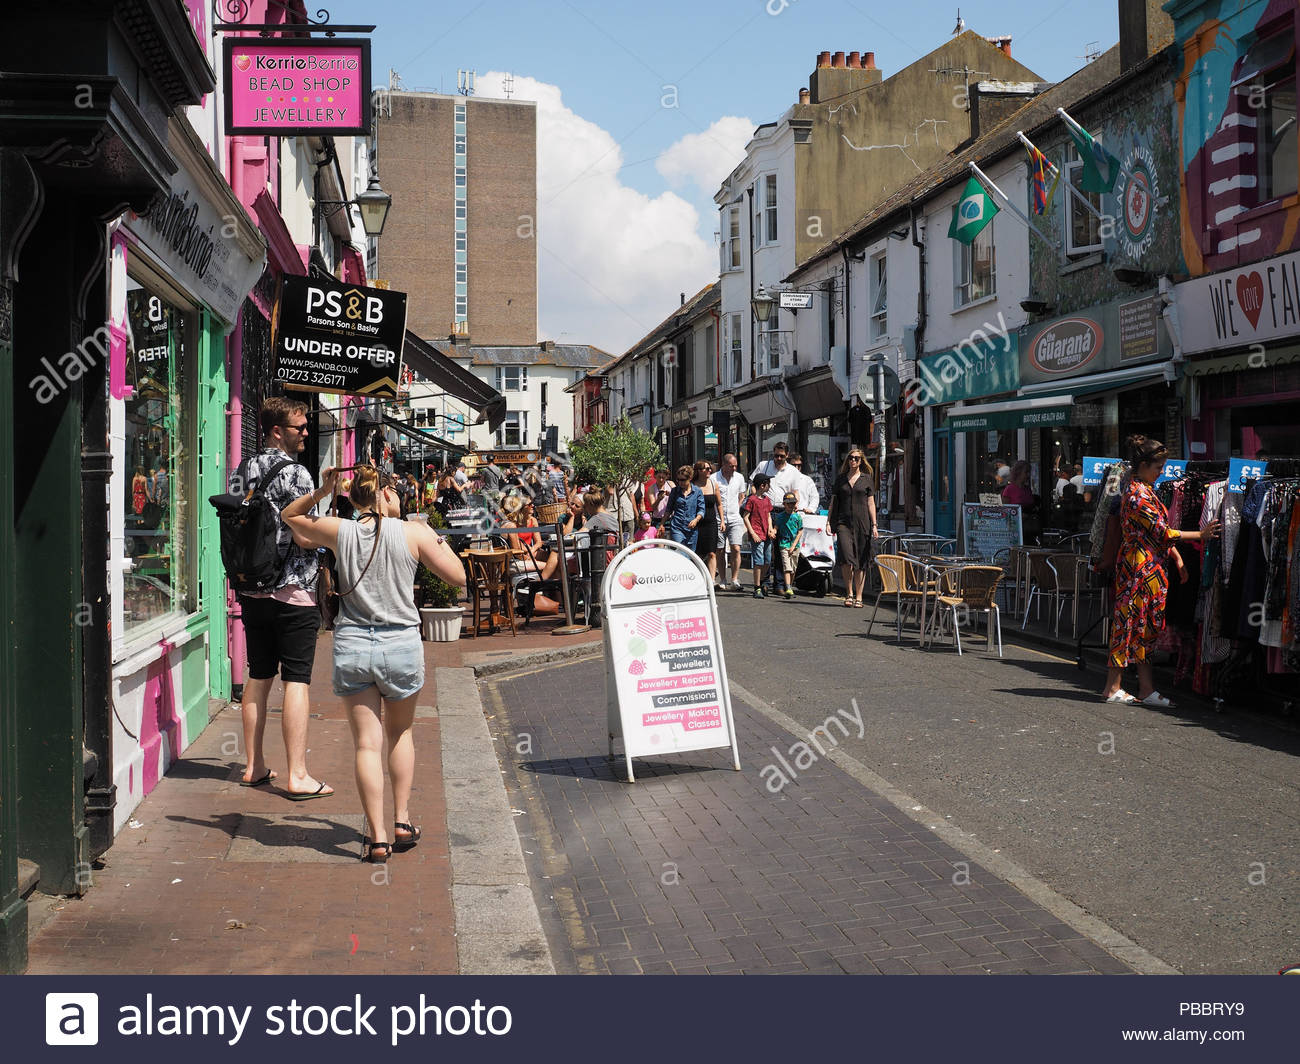 Crowded Brighton Lanes, shoppers in the Sunshine, Summer 2018, England, UK - Stock Image